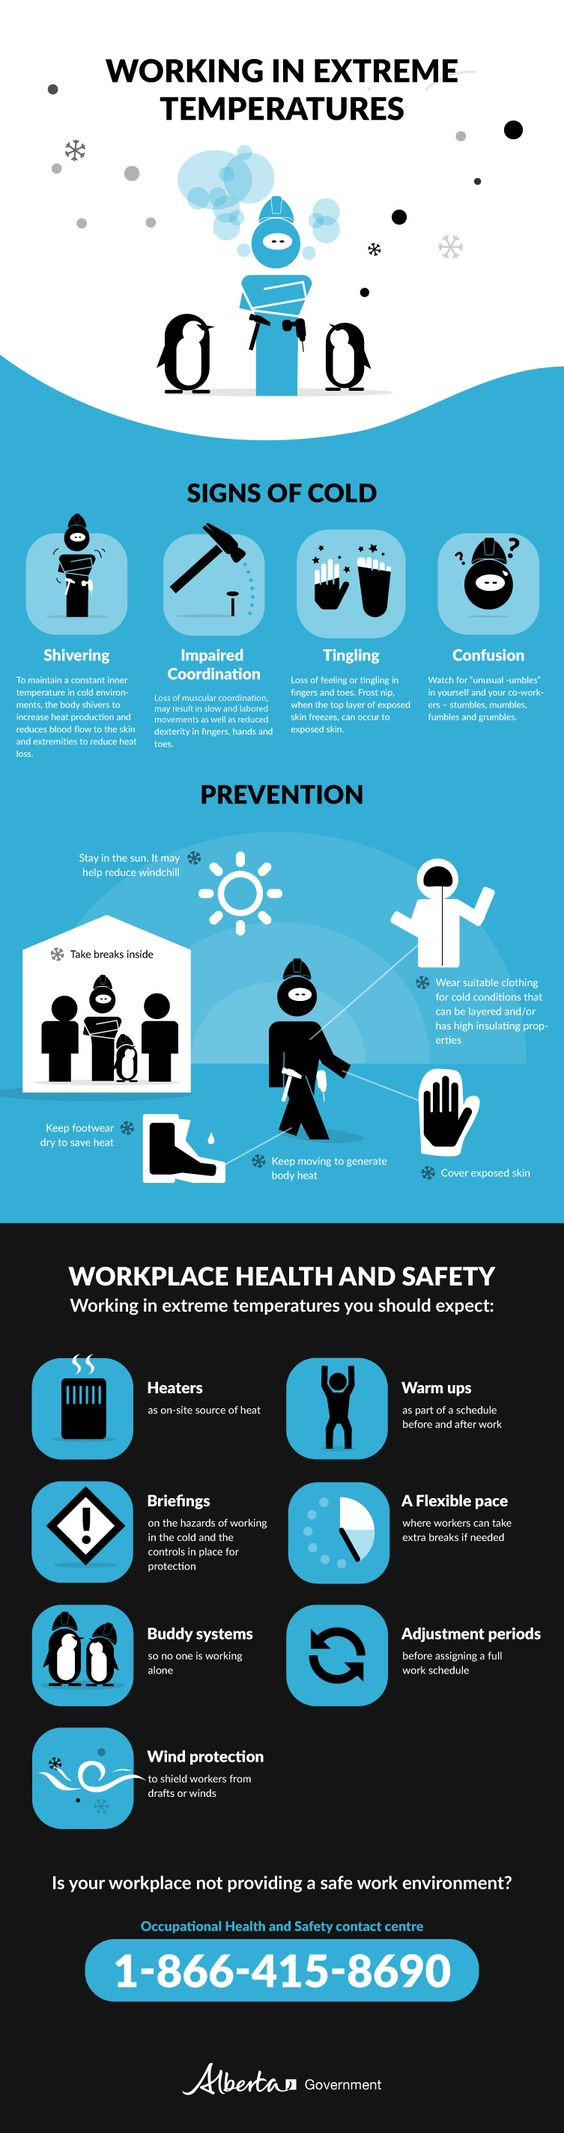 Working in the Cold infographic from Alberta